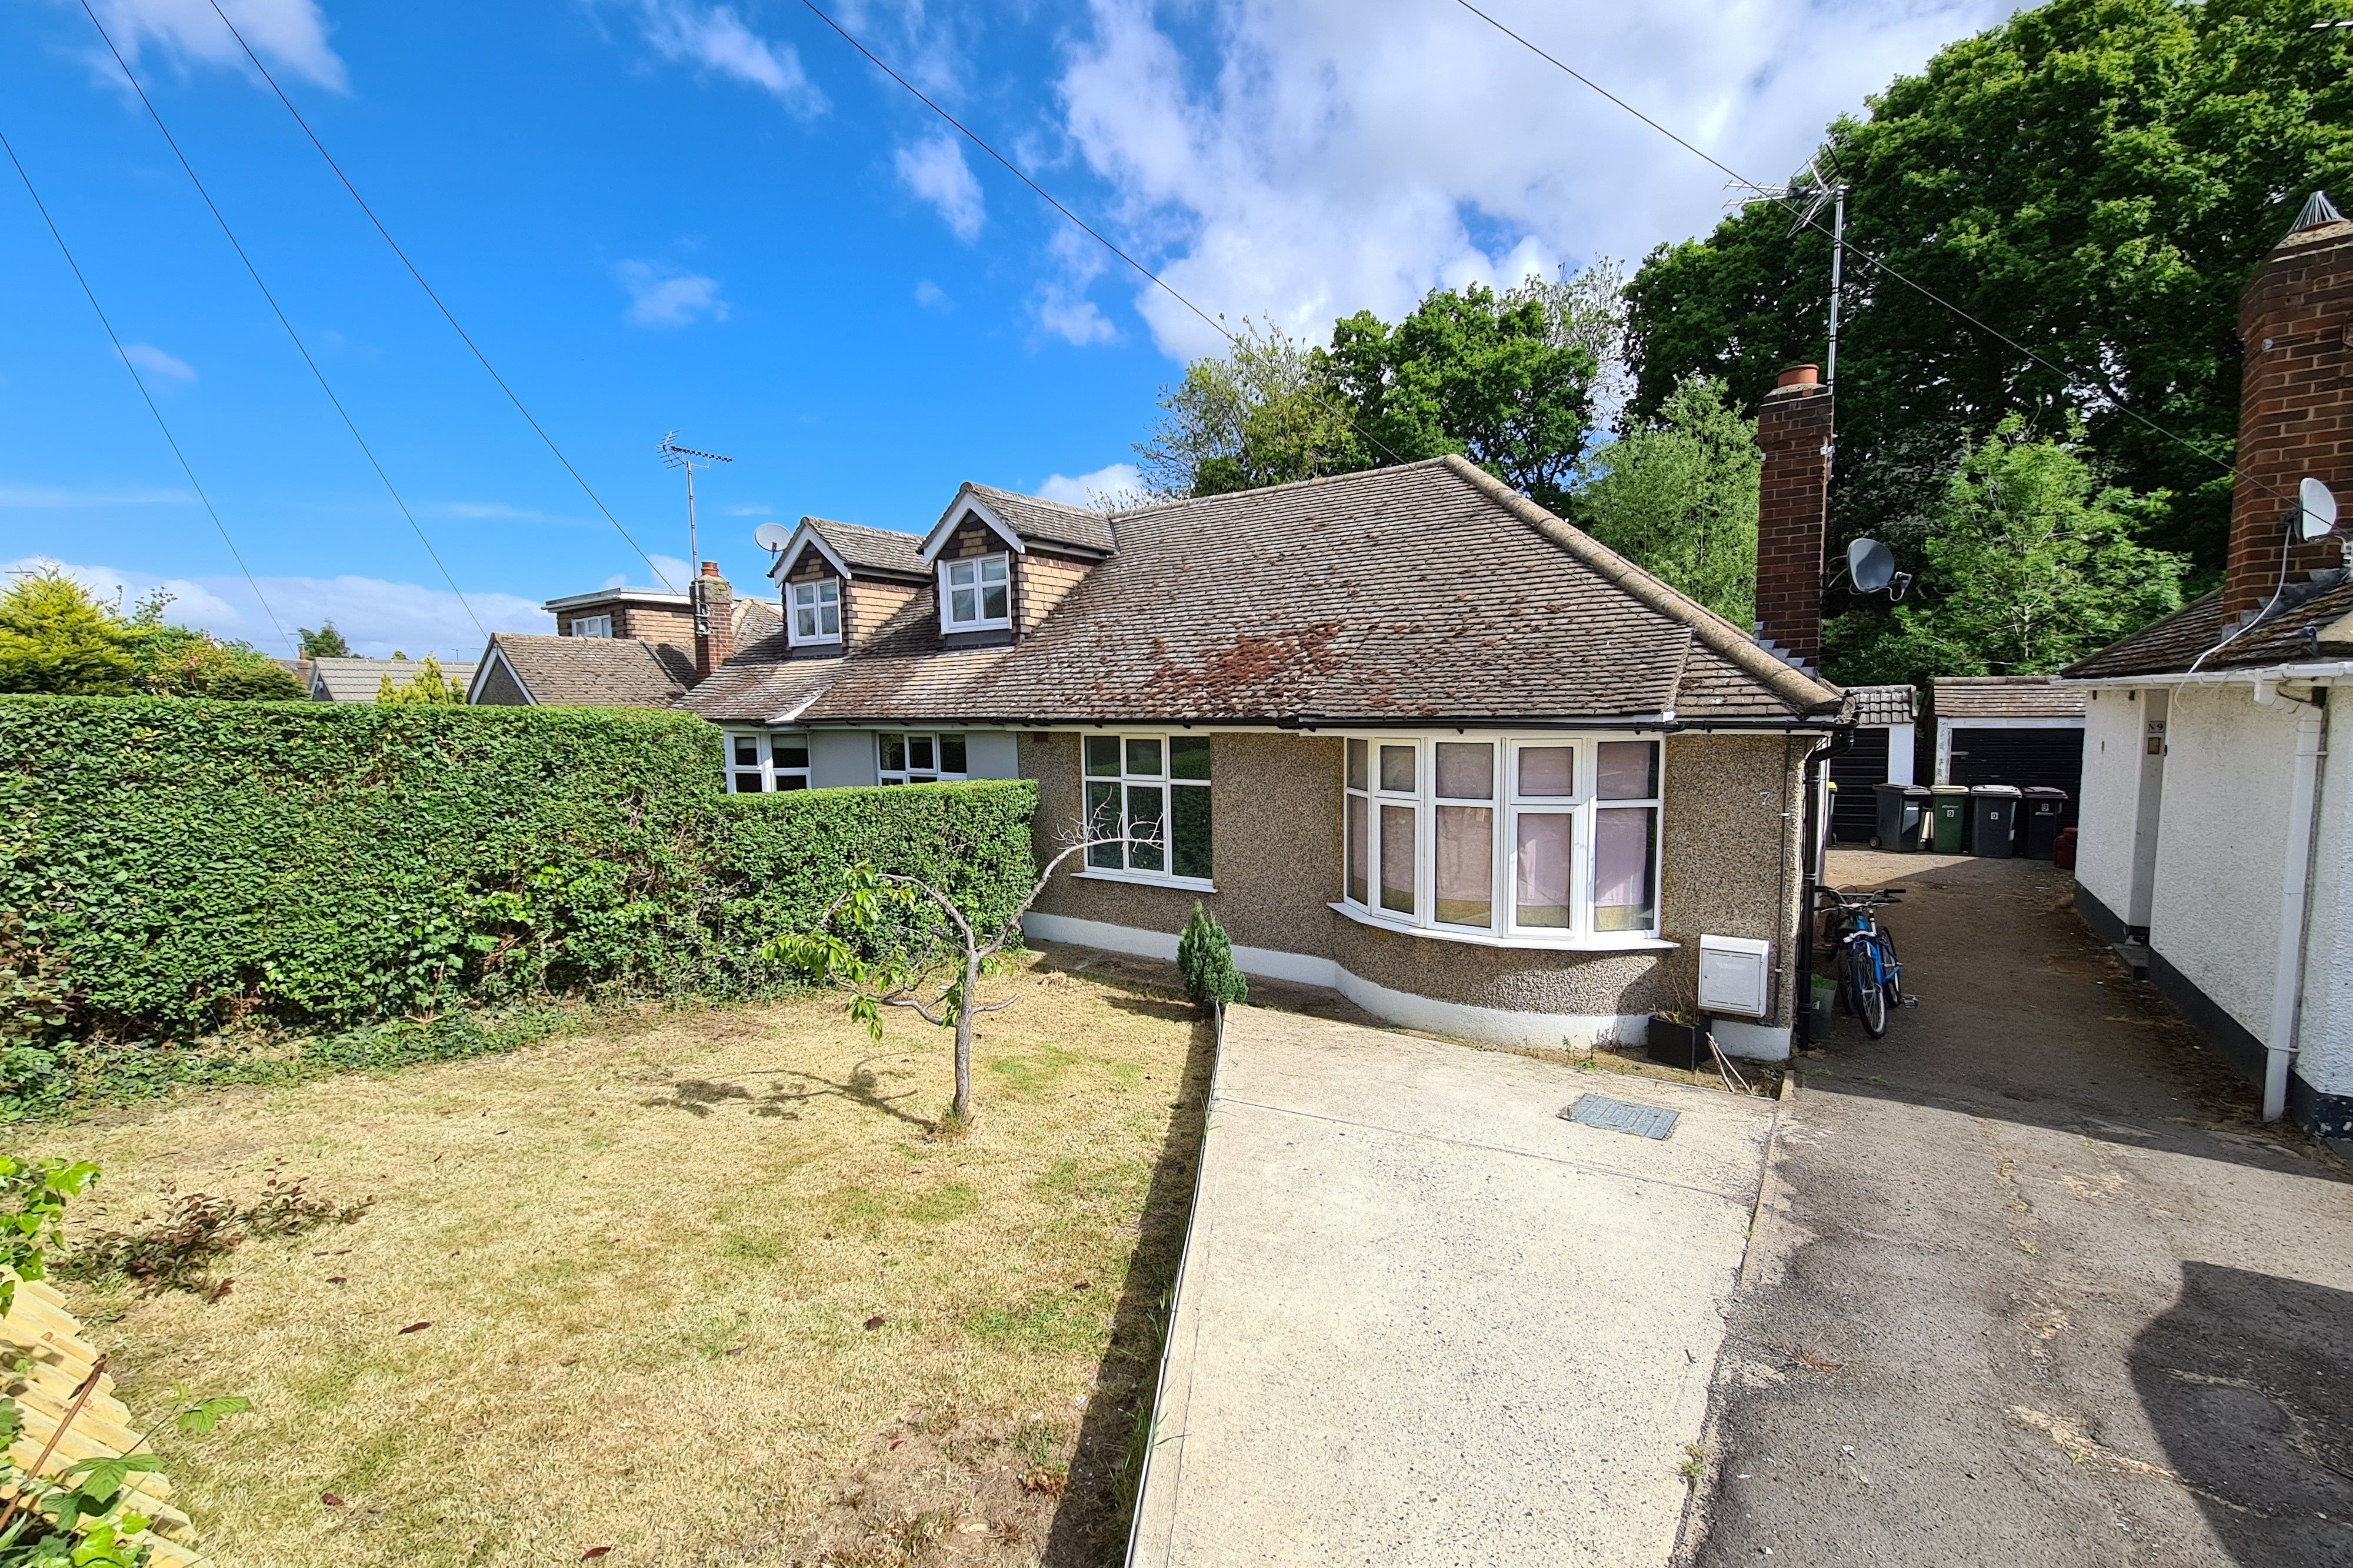 2 bed semi-detached bungalow for sale in Mendip Close, Rayleigh, SS6